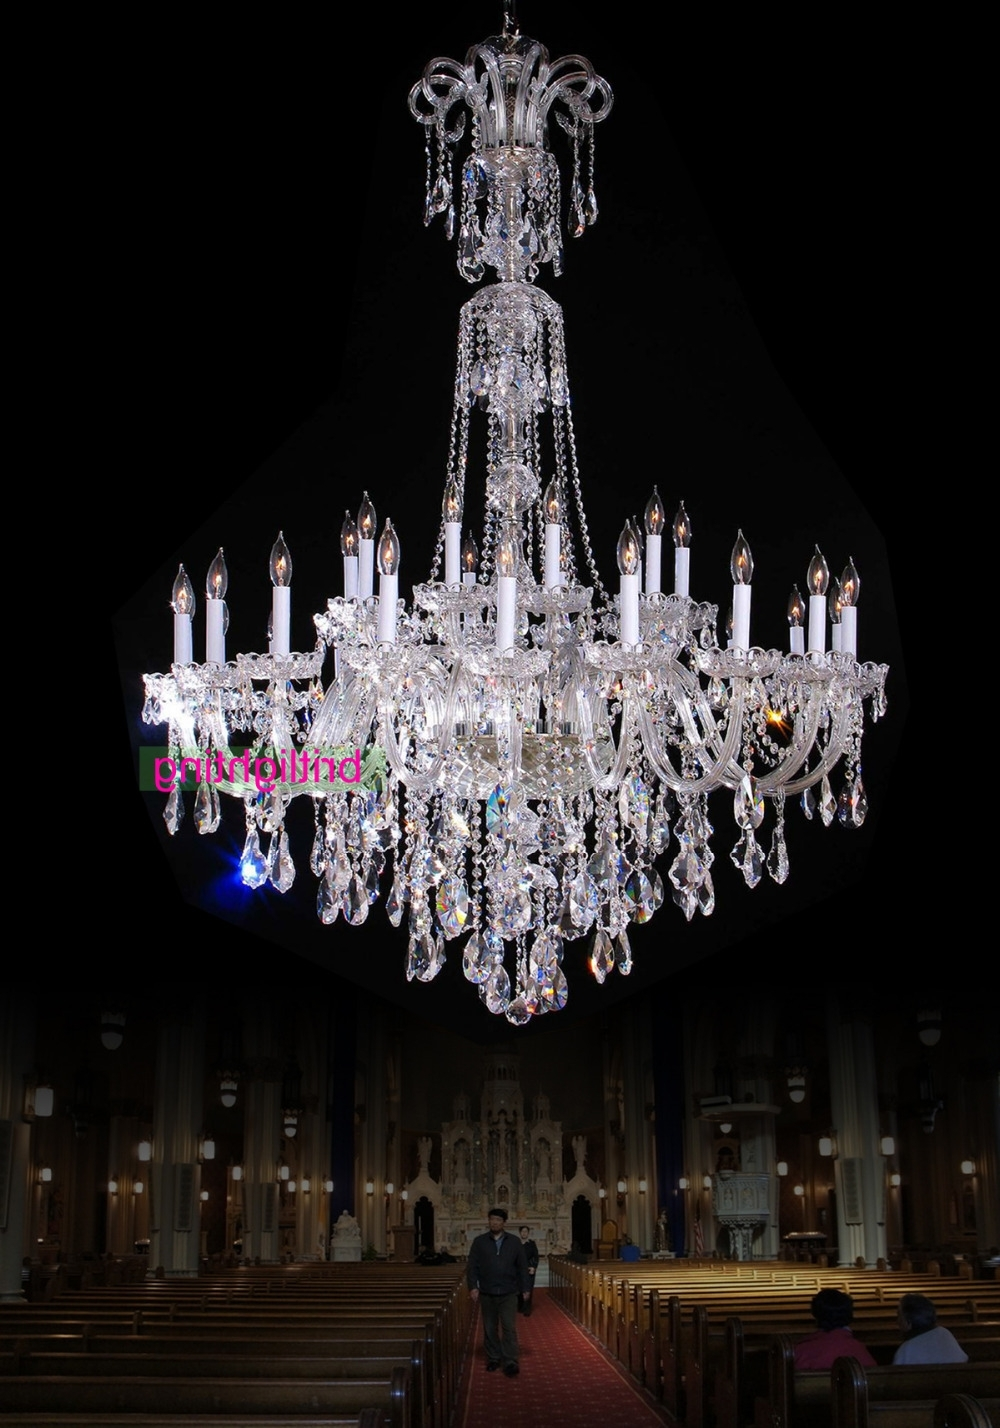 Extra Large Chandeliers Pertaining To Most Current Large Chandelier With Crystal Pendants Big Lamp For Hotel Extra (Gallery 10 of 20)